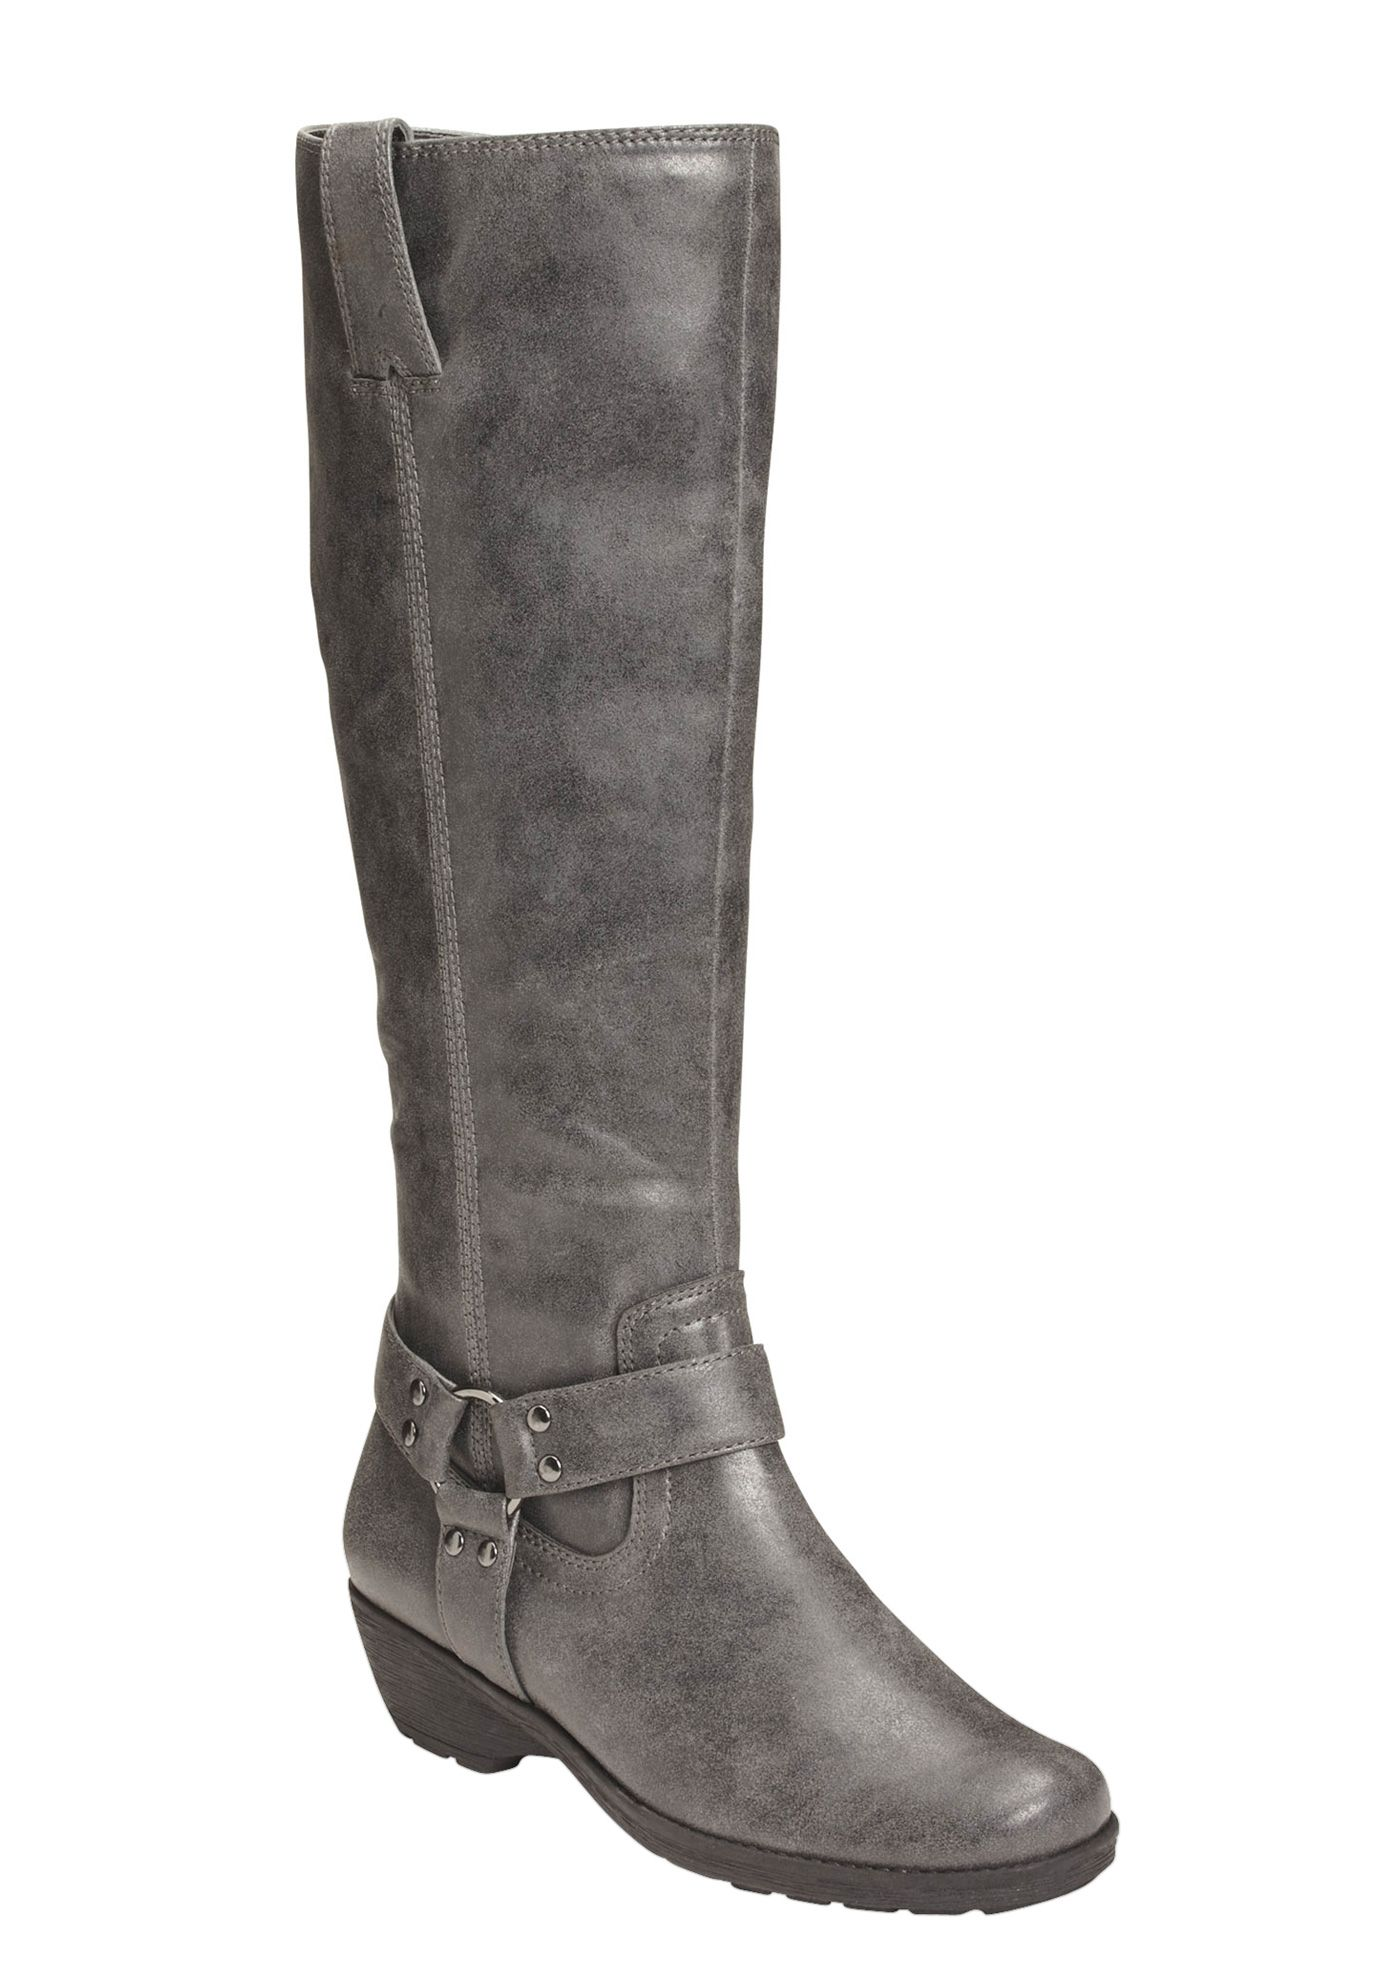 Boots, Wide calf boots, Tall riding boots